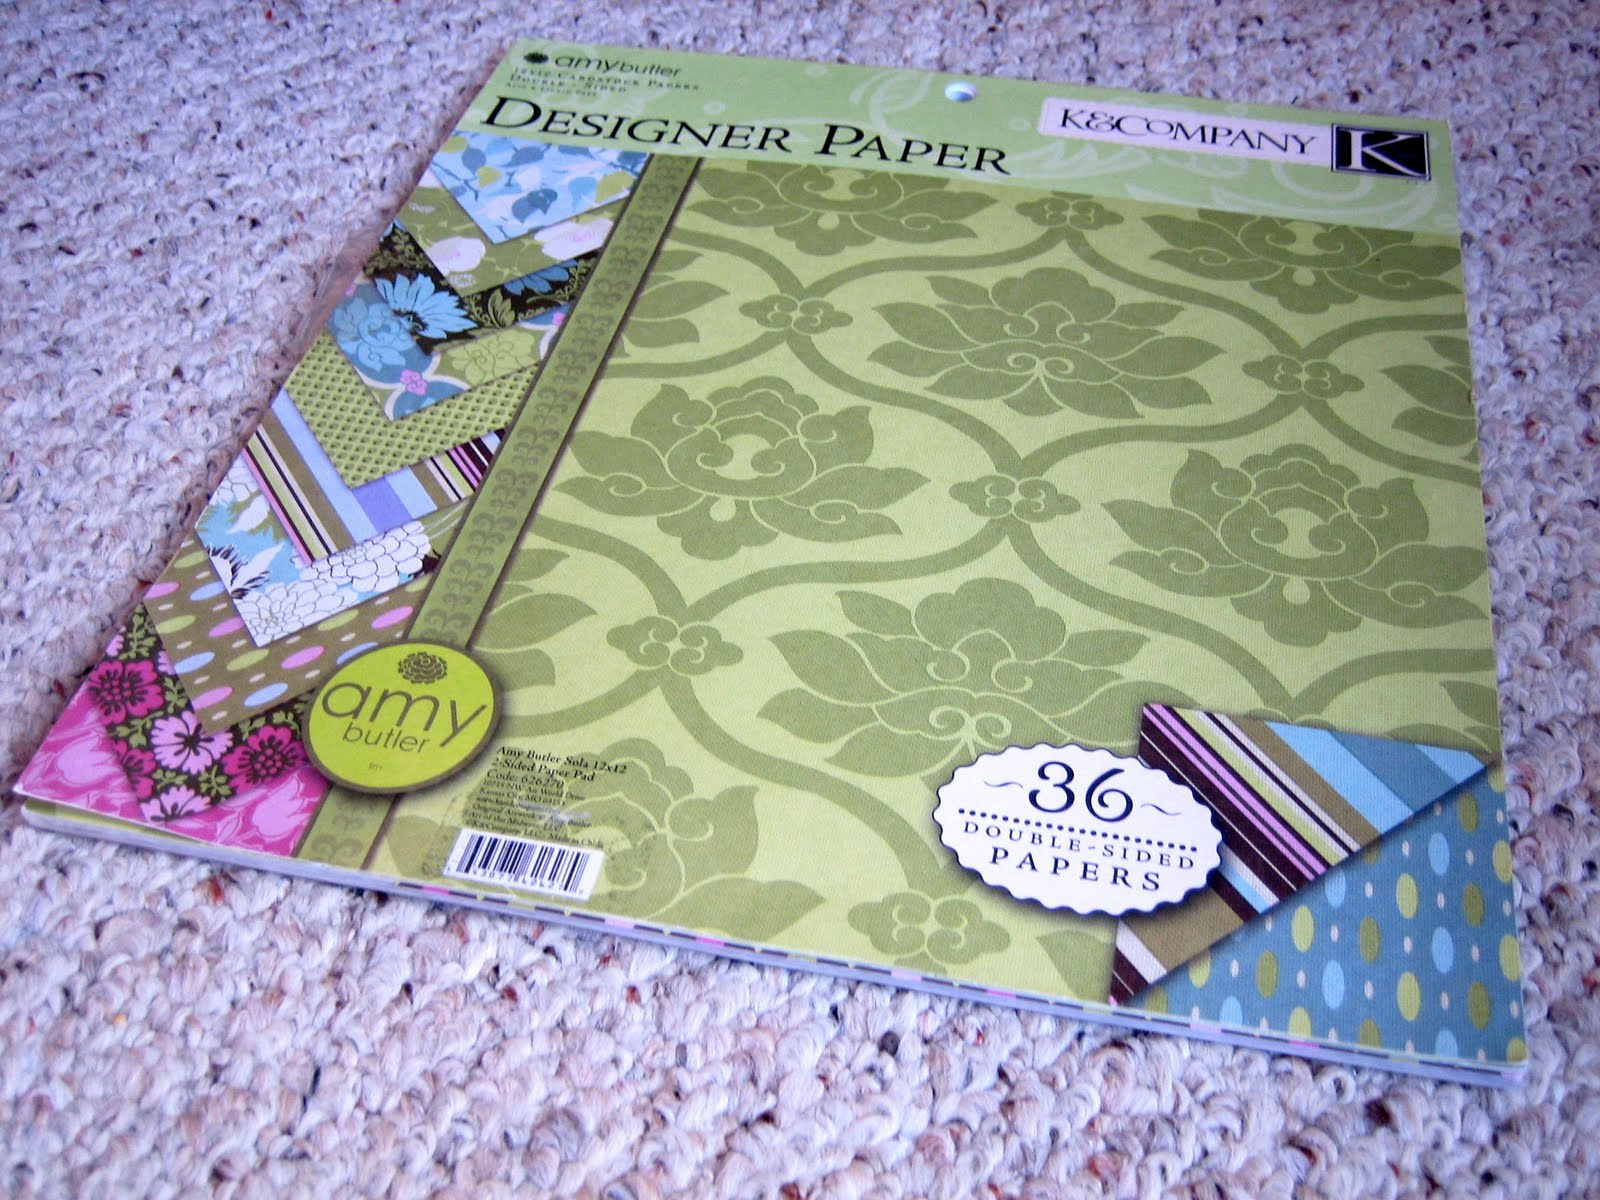 How to scrapbook magazines - Grab Your Scrapbook Paper I Used Amy Butler S Scrapbook Pack So That I Would Have A Bunch Of Designs And Colors That All Coordinate And You Know How I Feel